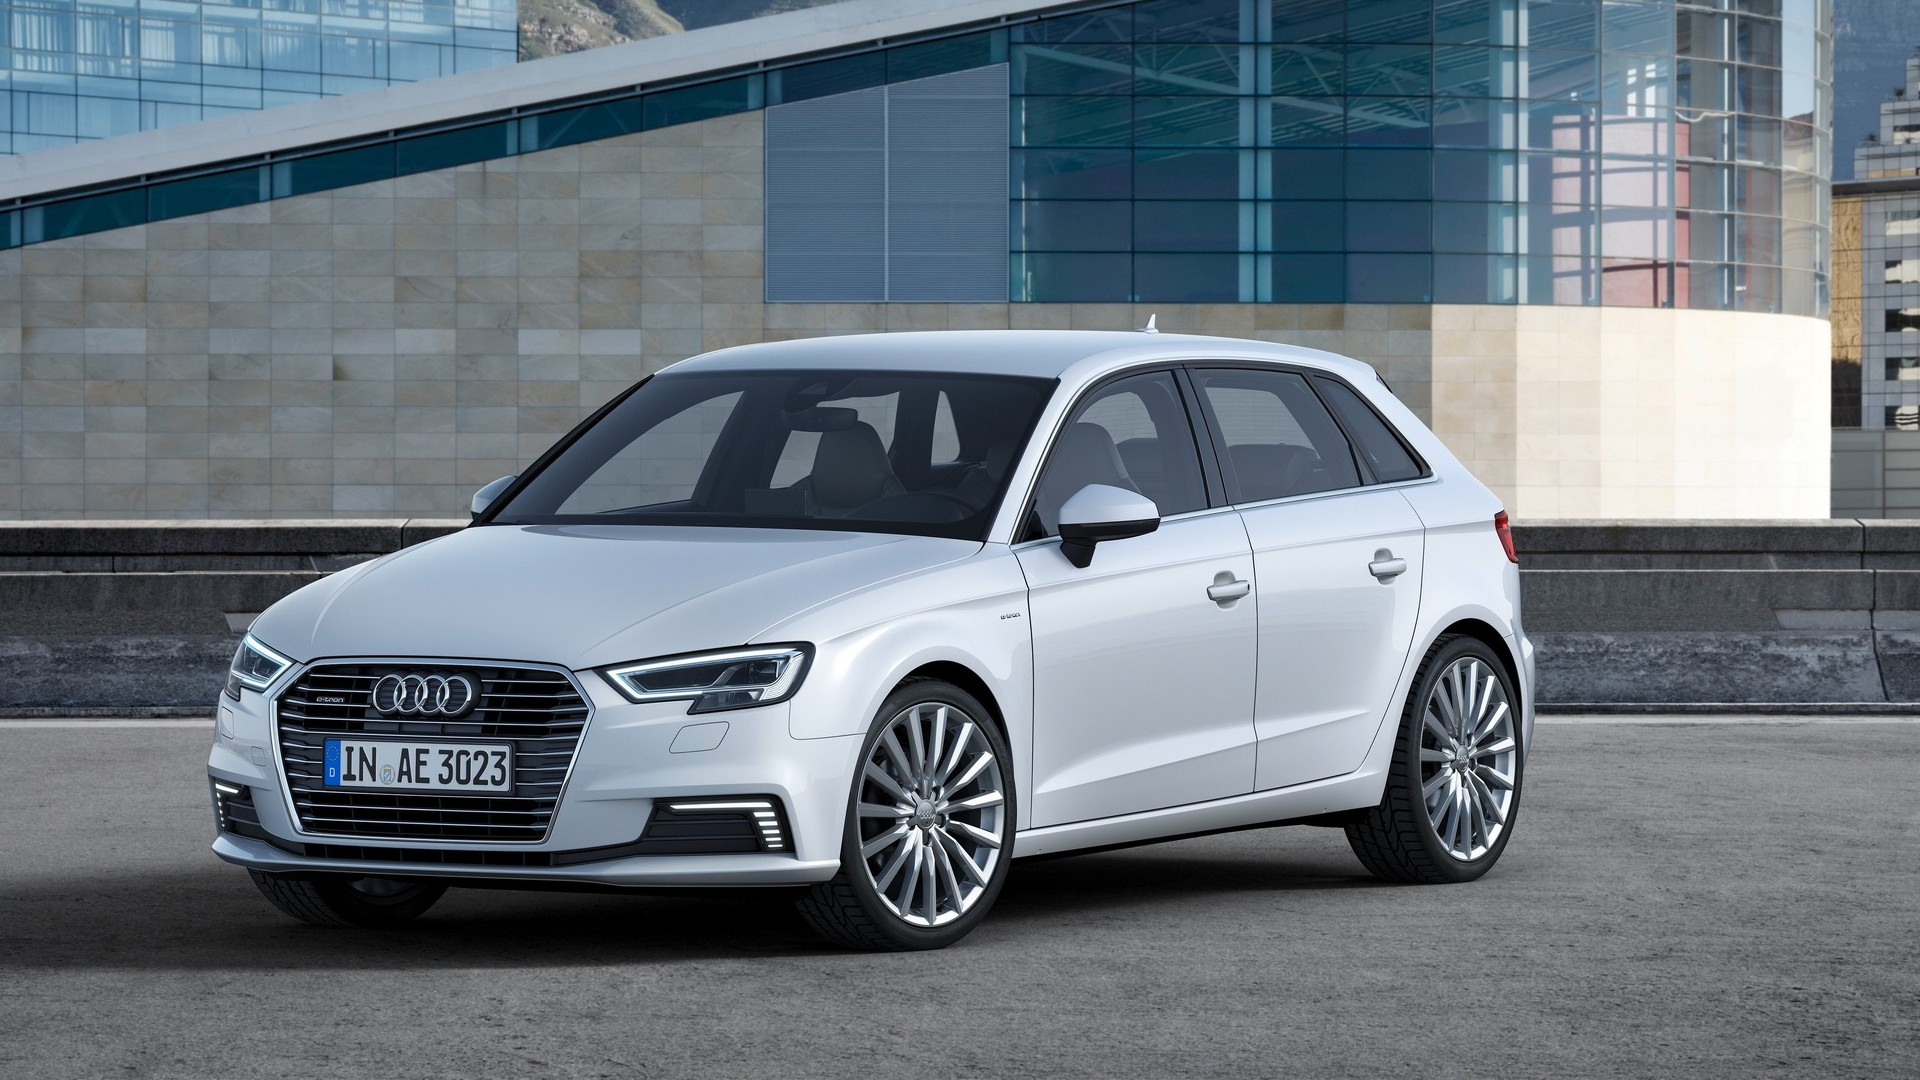 Image result for audi a3 sportback e-tron